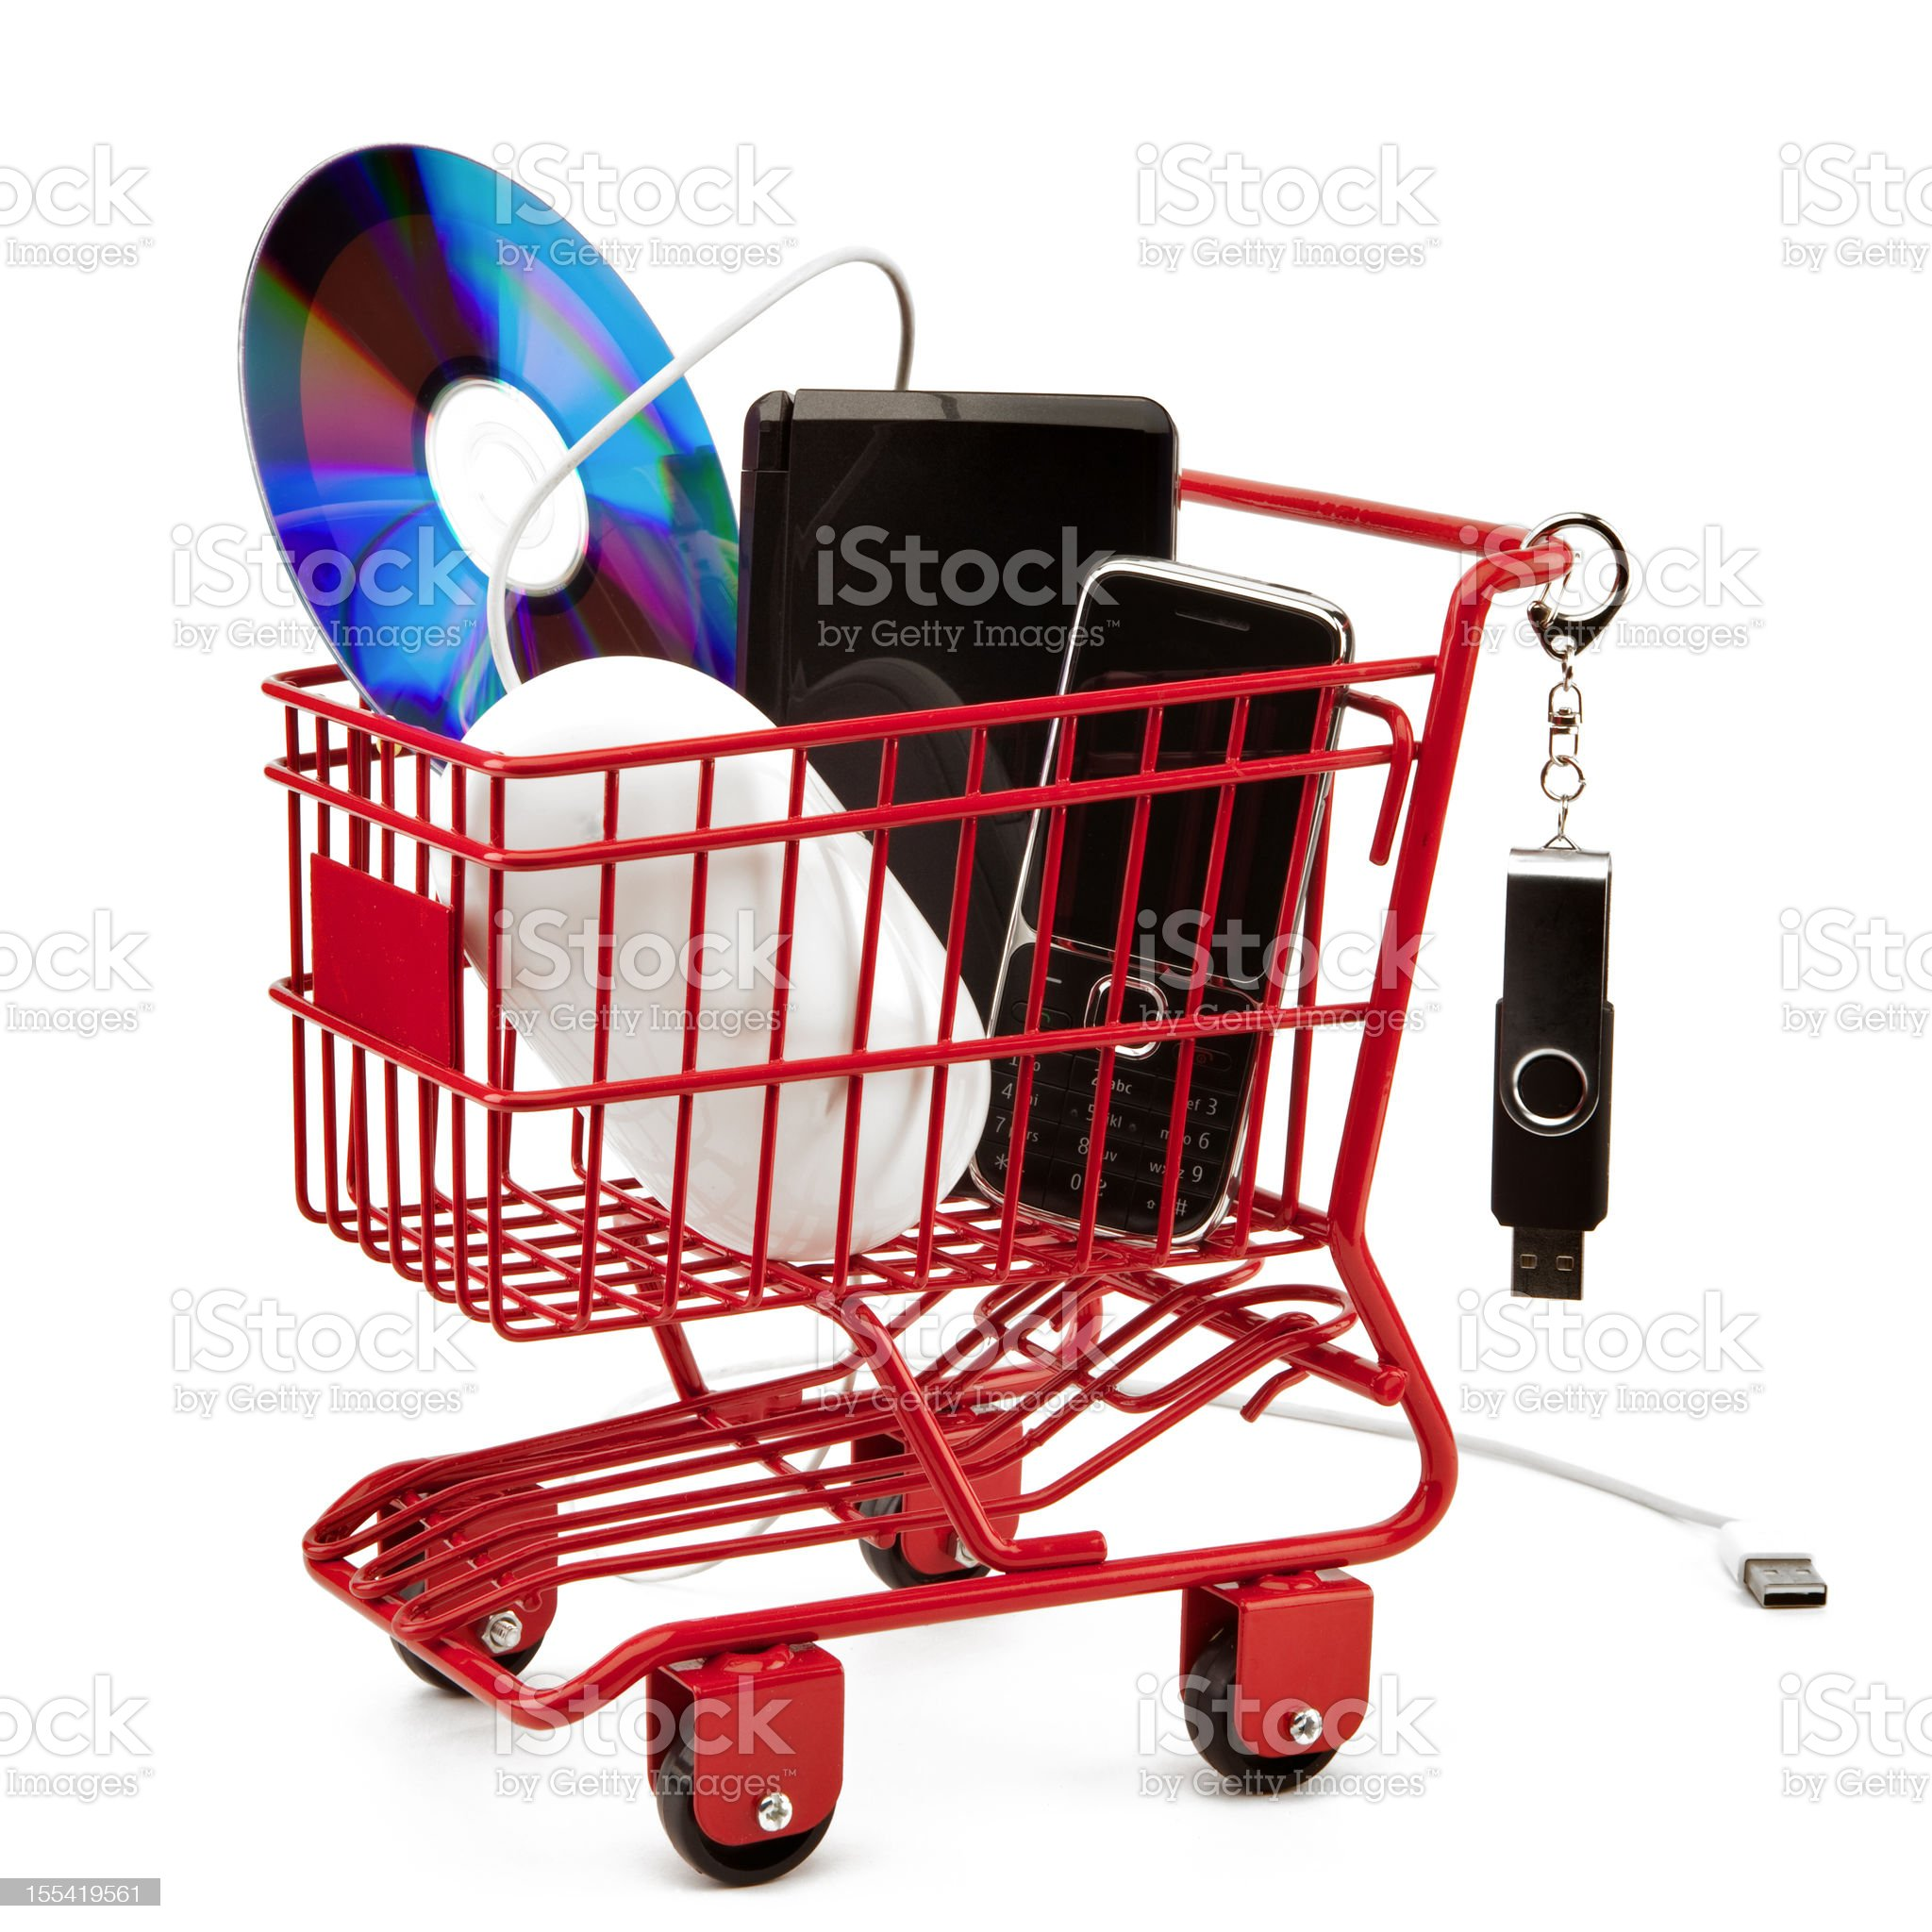 Red shopping cart series: Electronic Products royalty-free stock photo